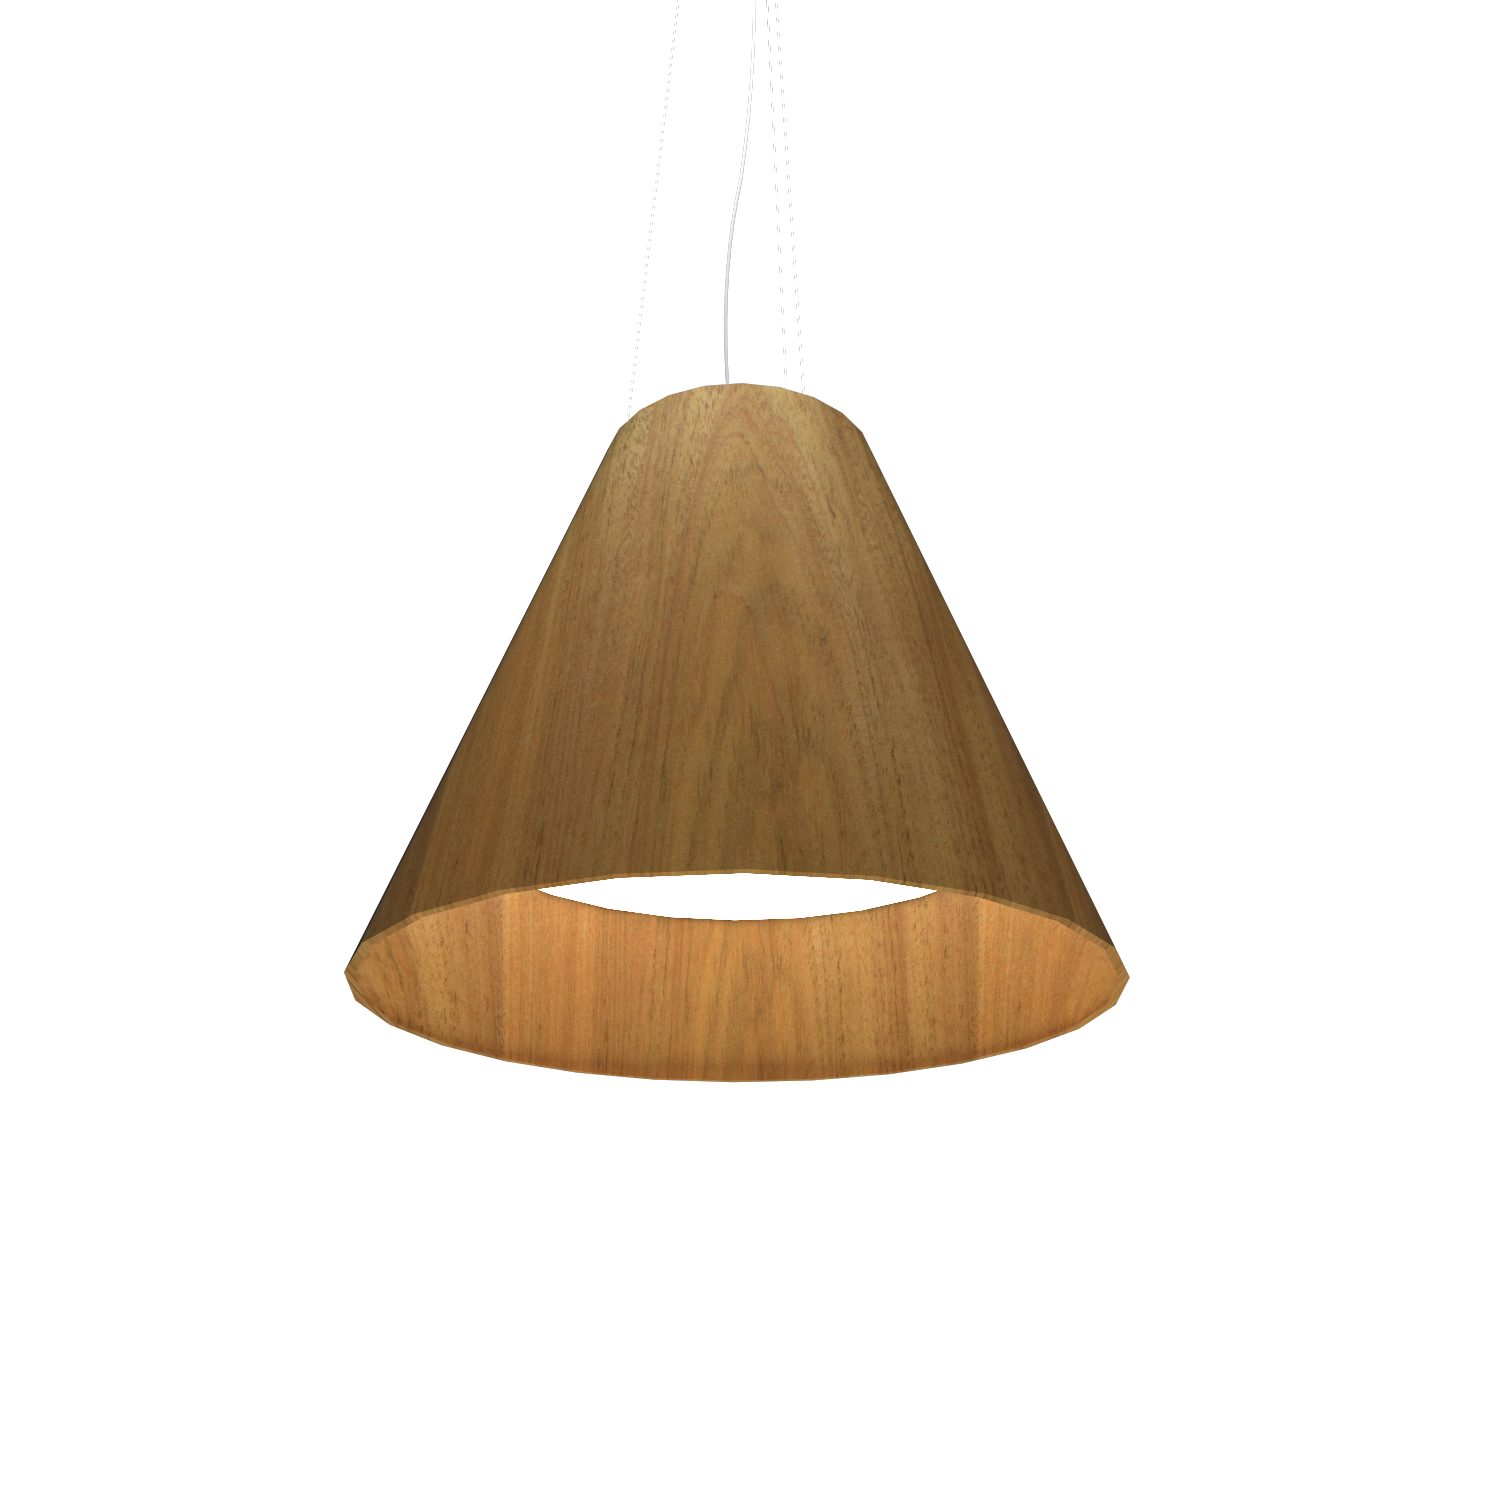 Pendant Lamp Accord Cônico 295 - Cônica Line Accord Lighting | 09. Louro Freijó